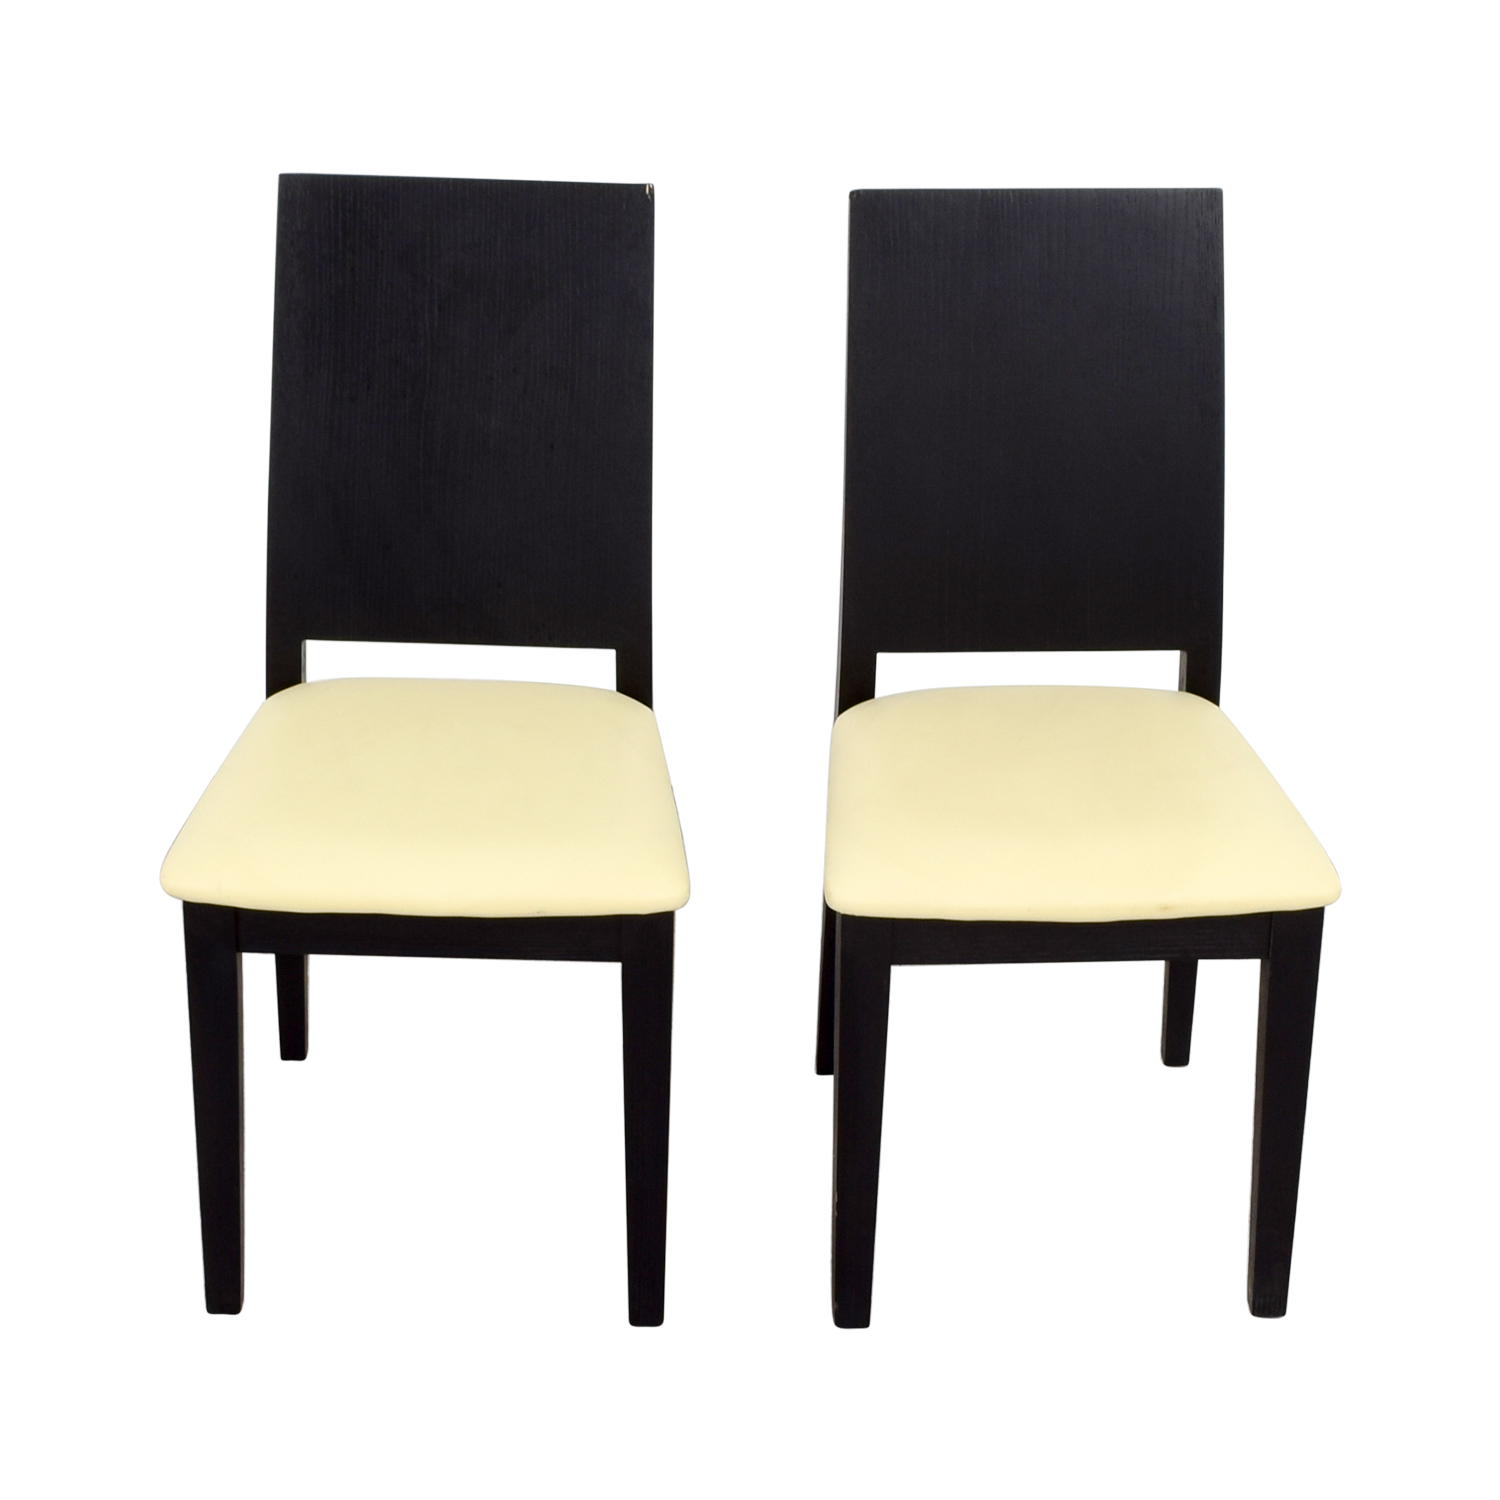 buy Black Frame with White Seat Dining Chairs Chairs